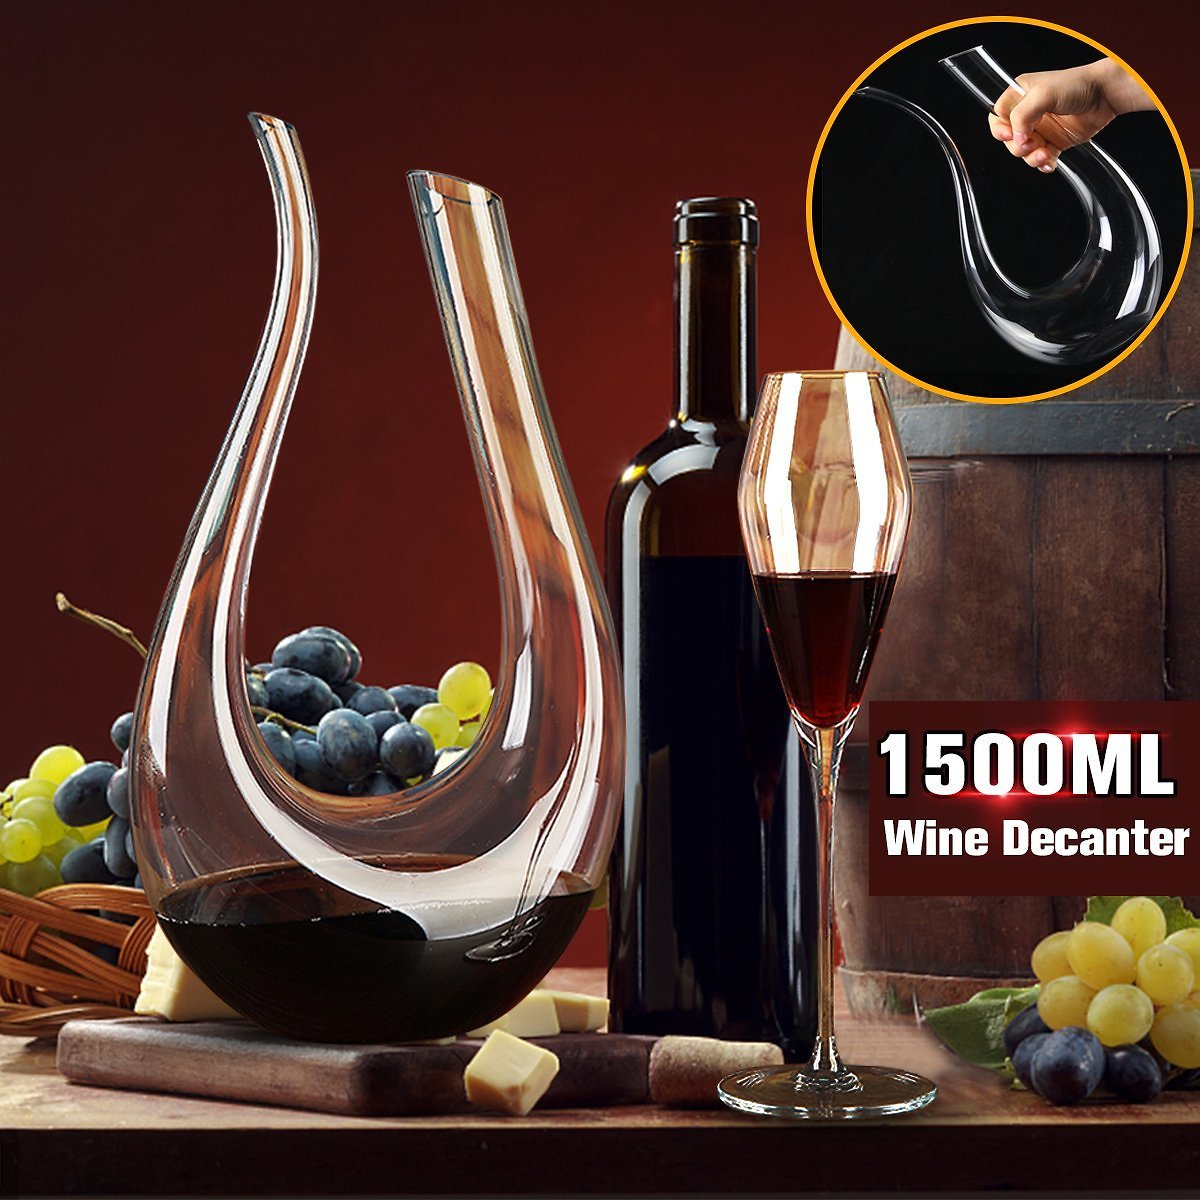 Walmart Sale 1500ML-Luxurious-Crystal-Glass-U-shaped-Horn-Wine-Decanter-Wine-Pourer-Container-Handle-Lead-Free-Hor